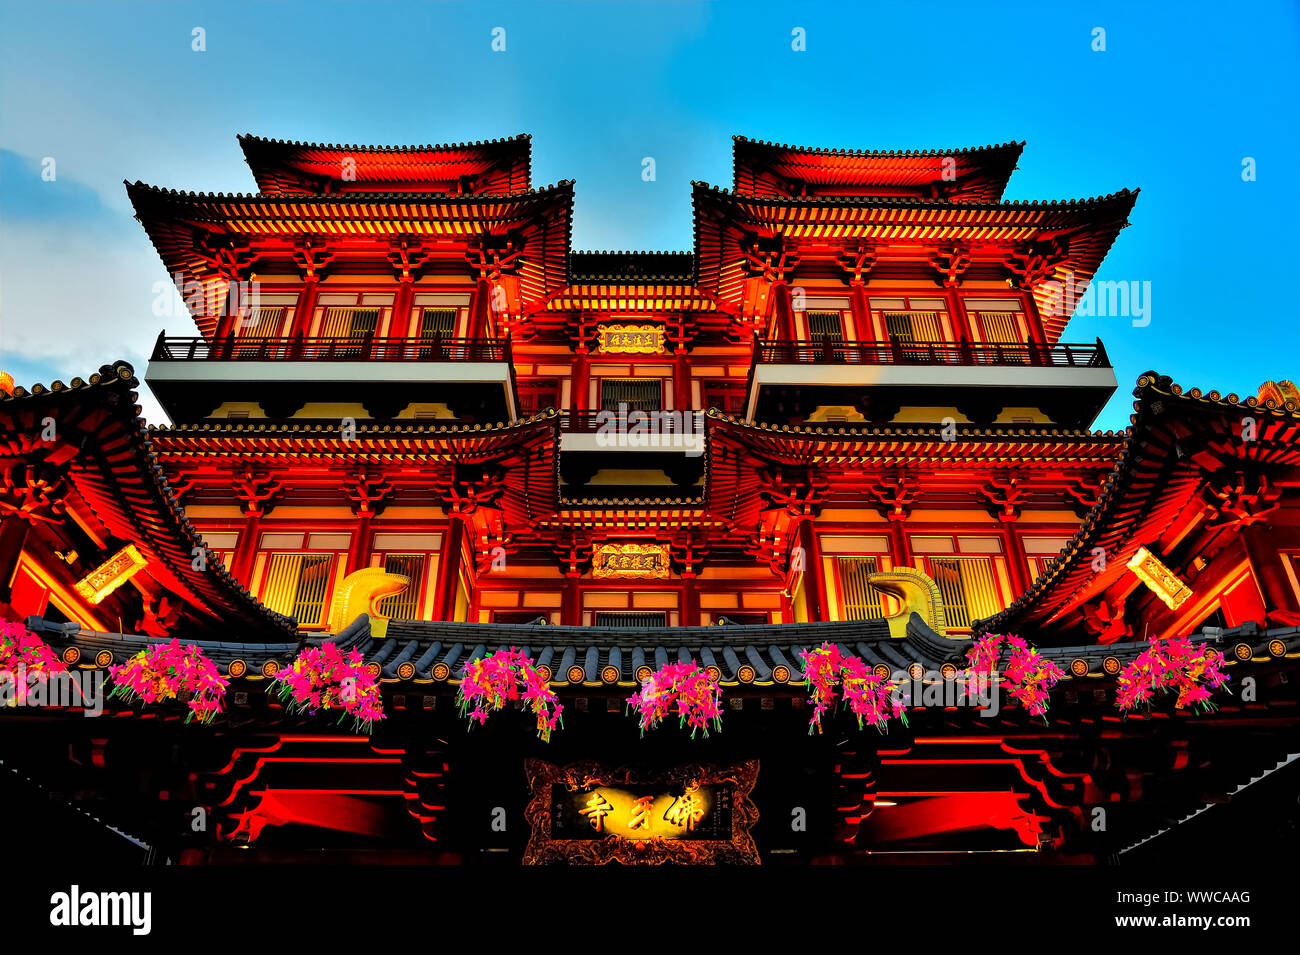 Exterior of Buddha Tooth Relic Temple in Chinatown, Singapore at evening blue hour and lit for Chinese New Year Stock Photo